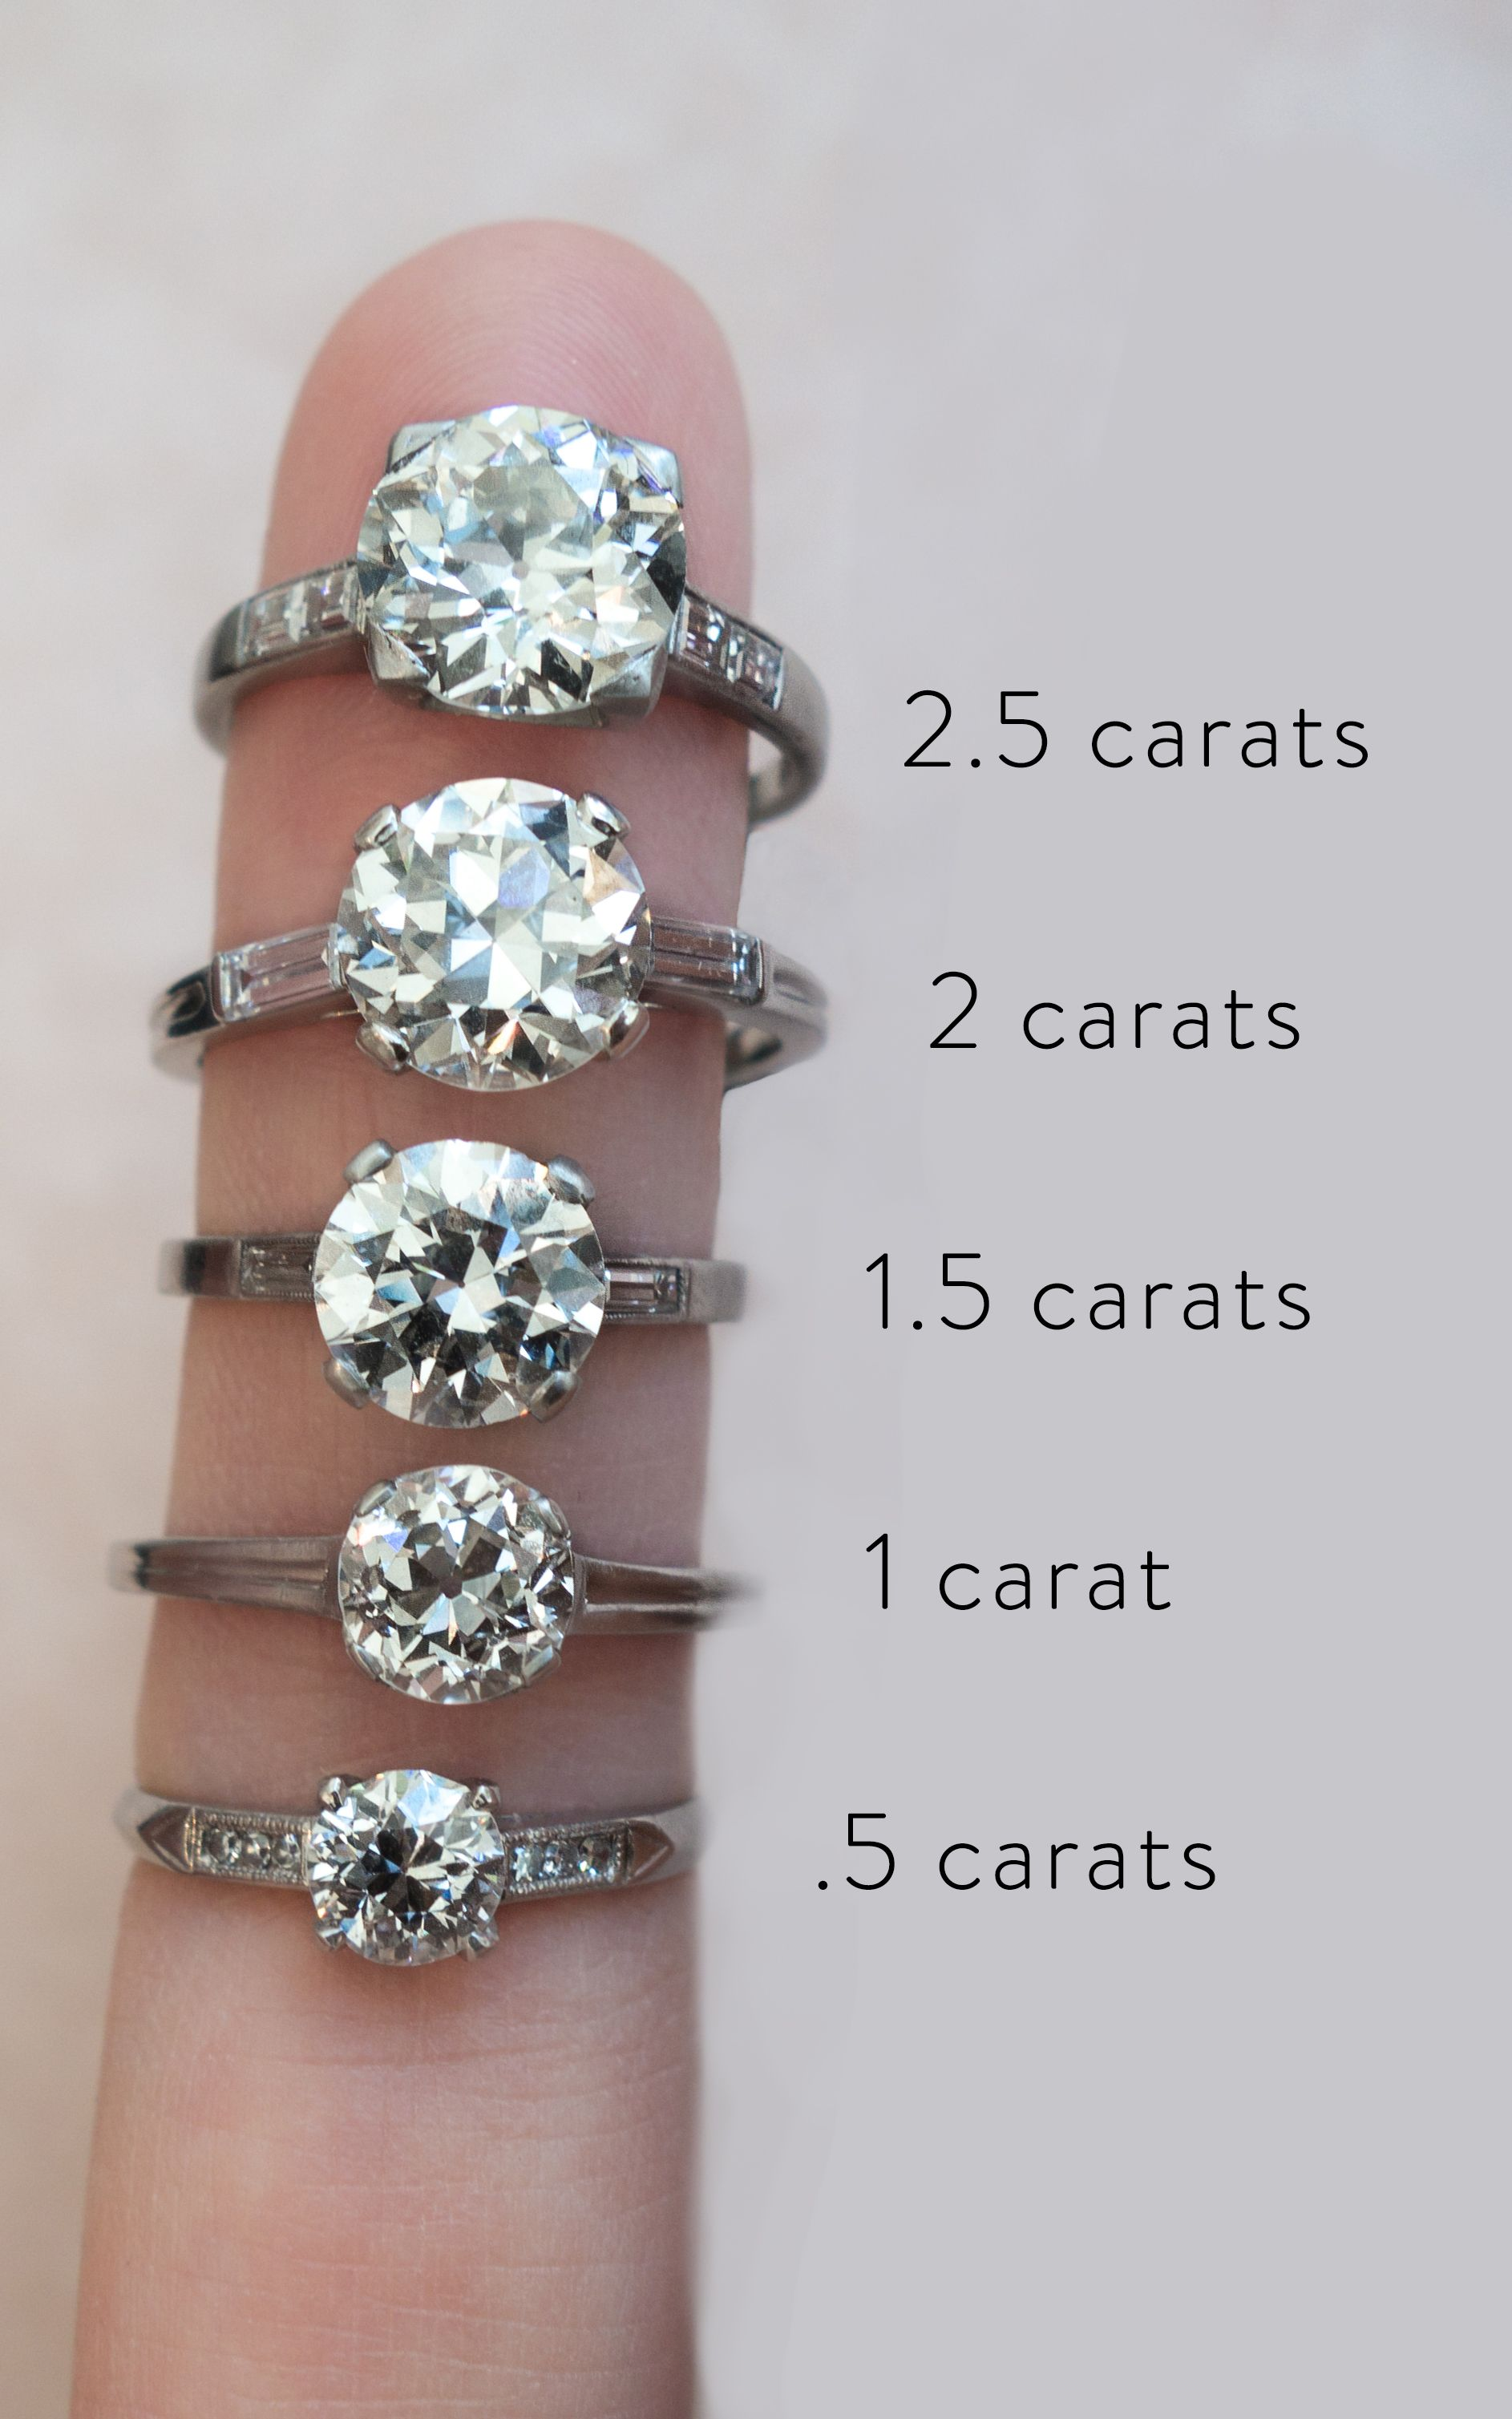 diamond handphone download solitaire engagement radiant cut by elegant of attachment halo carat rings ring reputable size